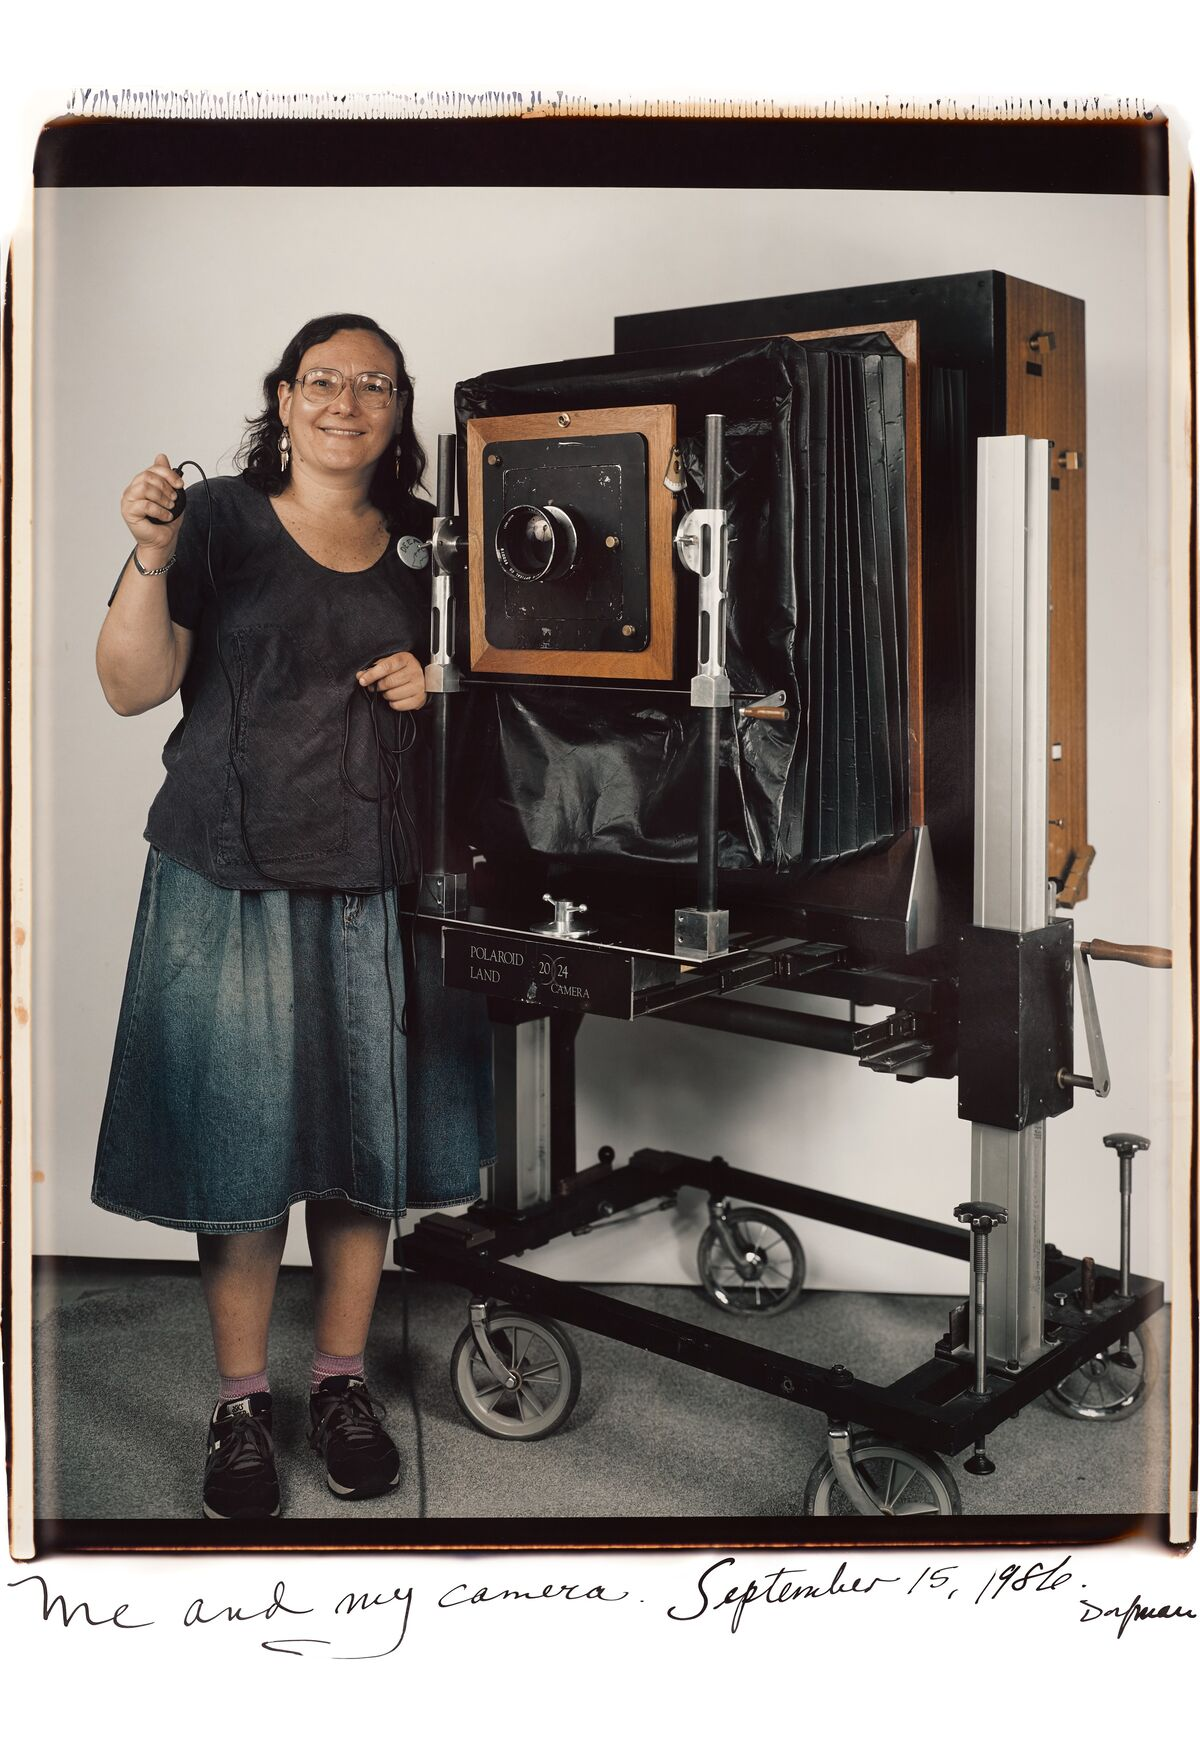 Elsa Dorfman, Me and my camera, 1986. Courtesy of the artist.